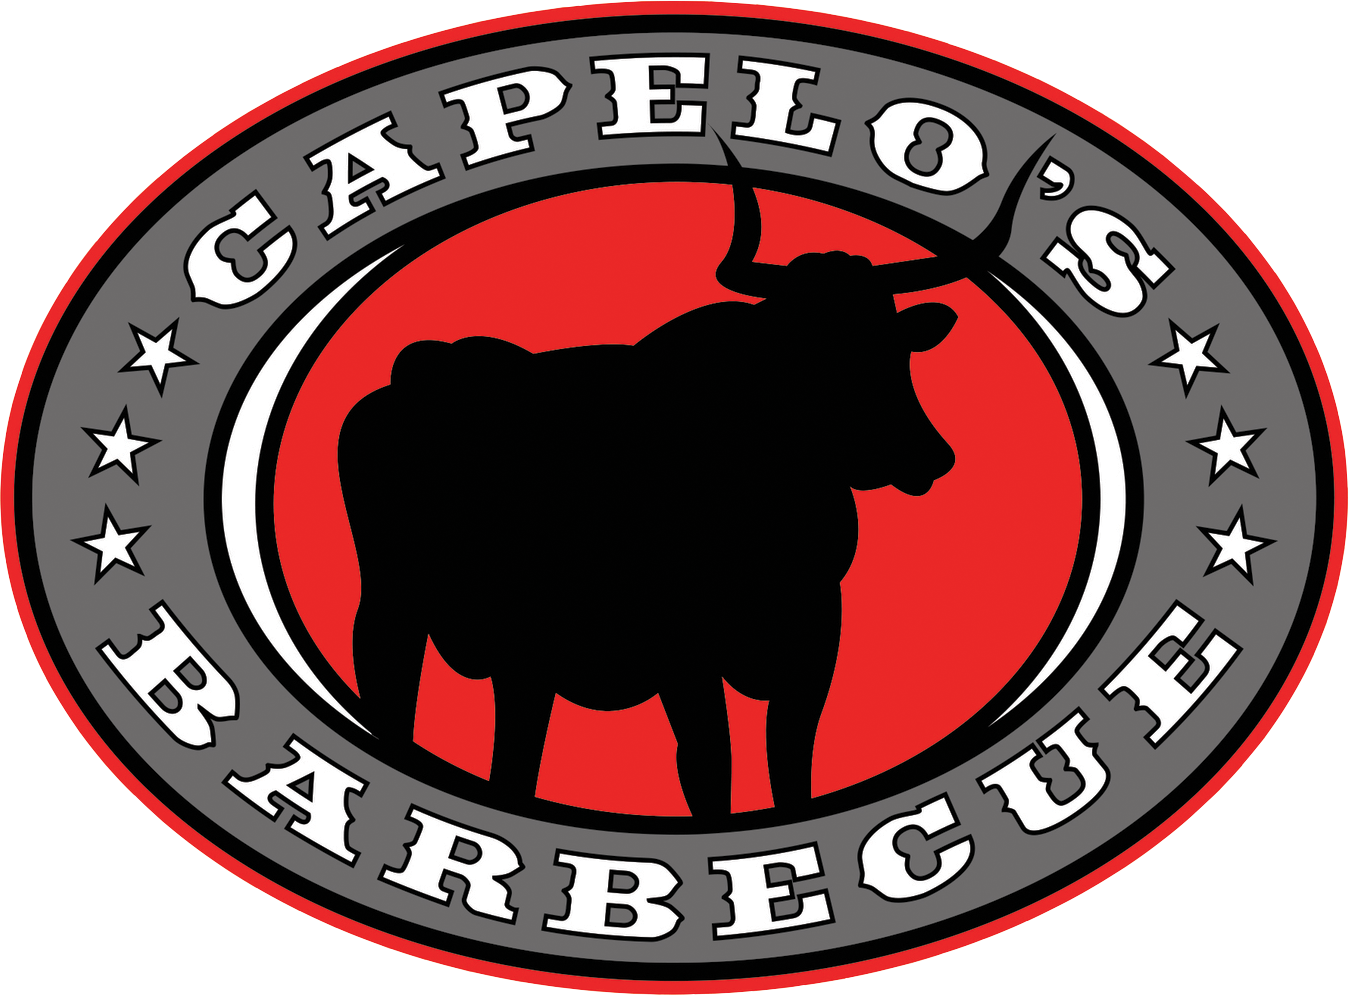 Capelo's-Barbecue.png